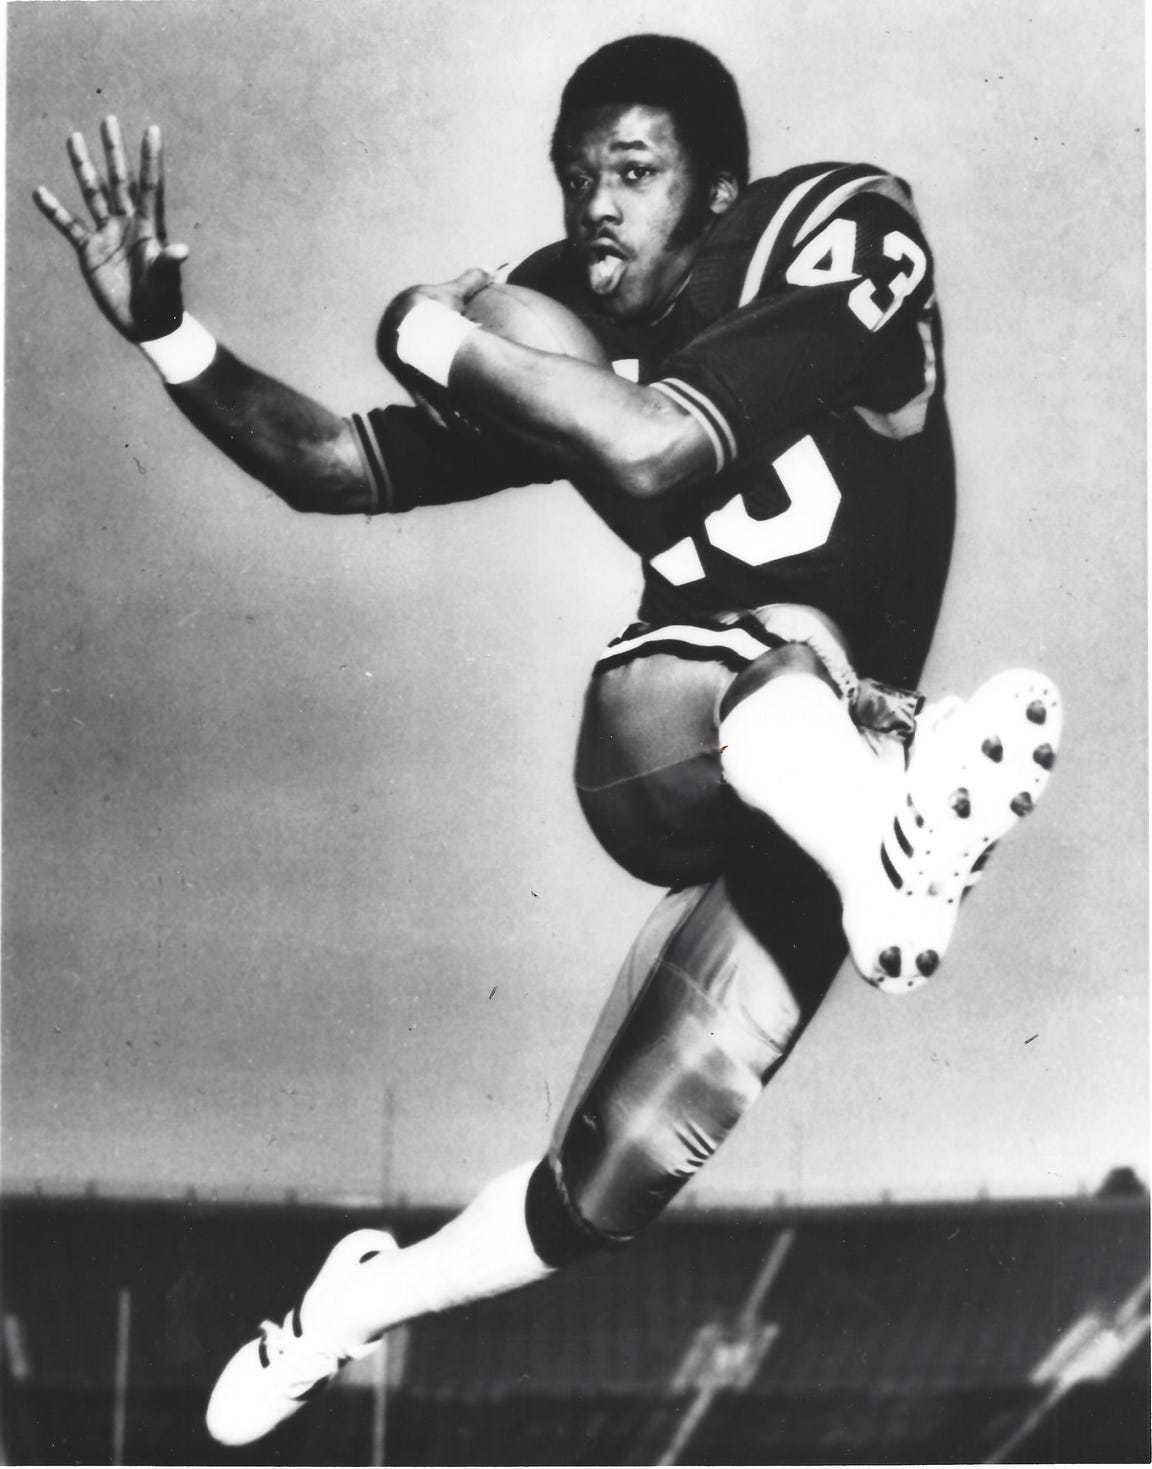 Darryl Stingley's speed made him a weapon as a running back and a wide receiver for Purdue from 1970-72.